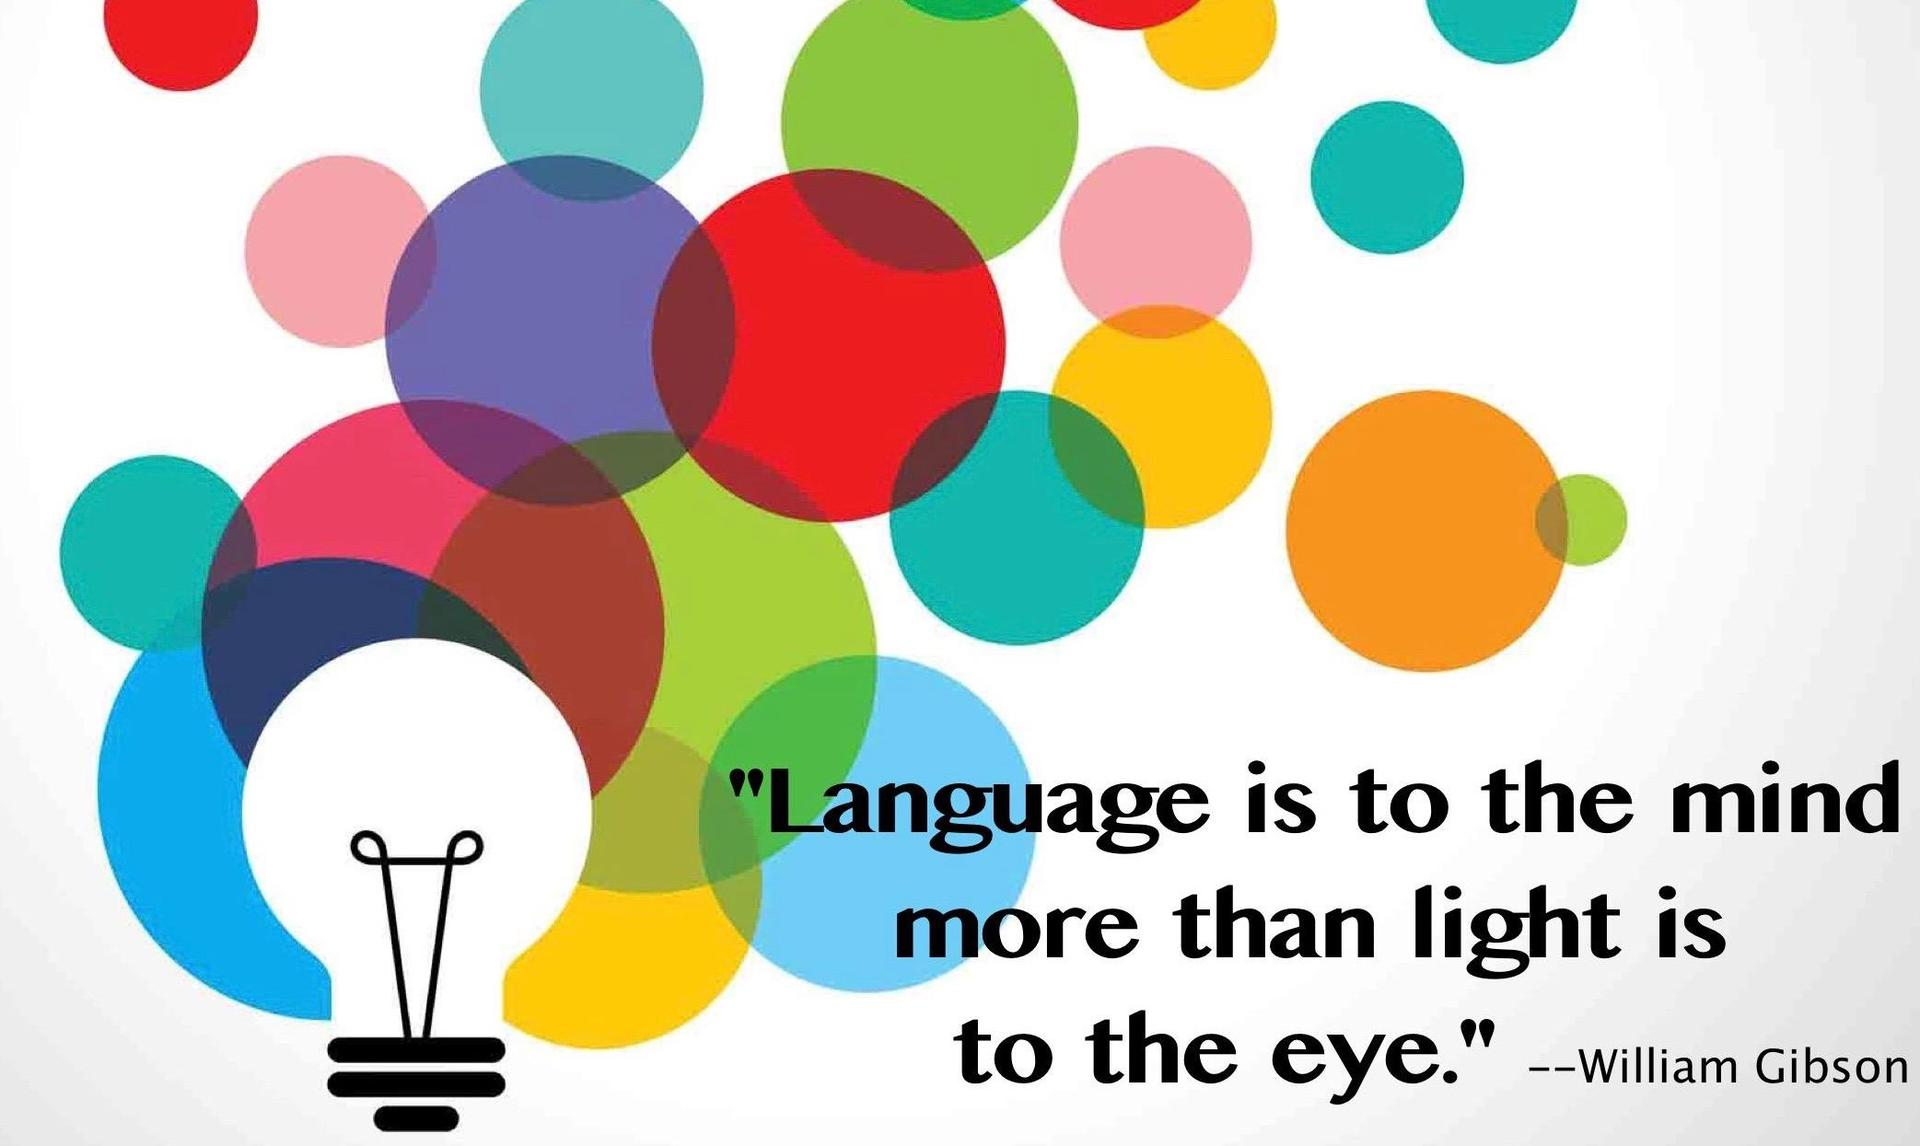 Language is the Light of the Mind